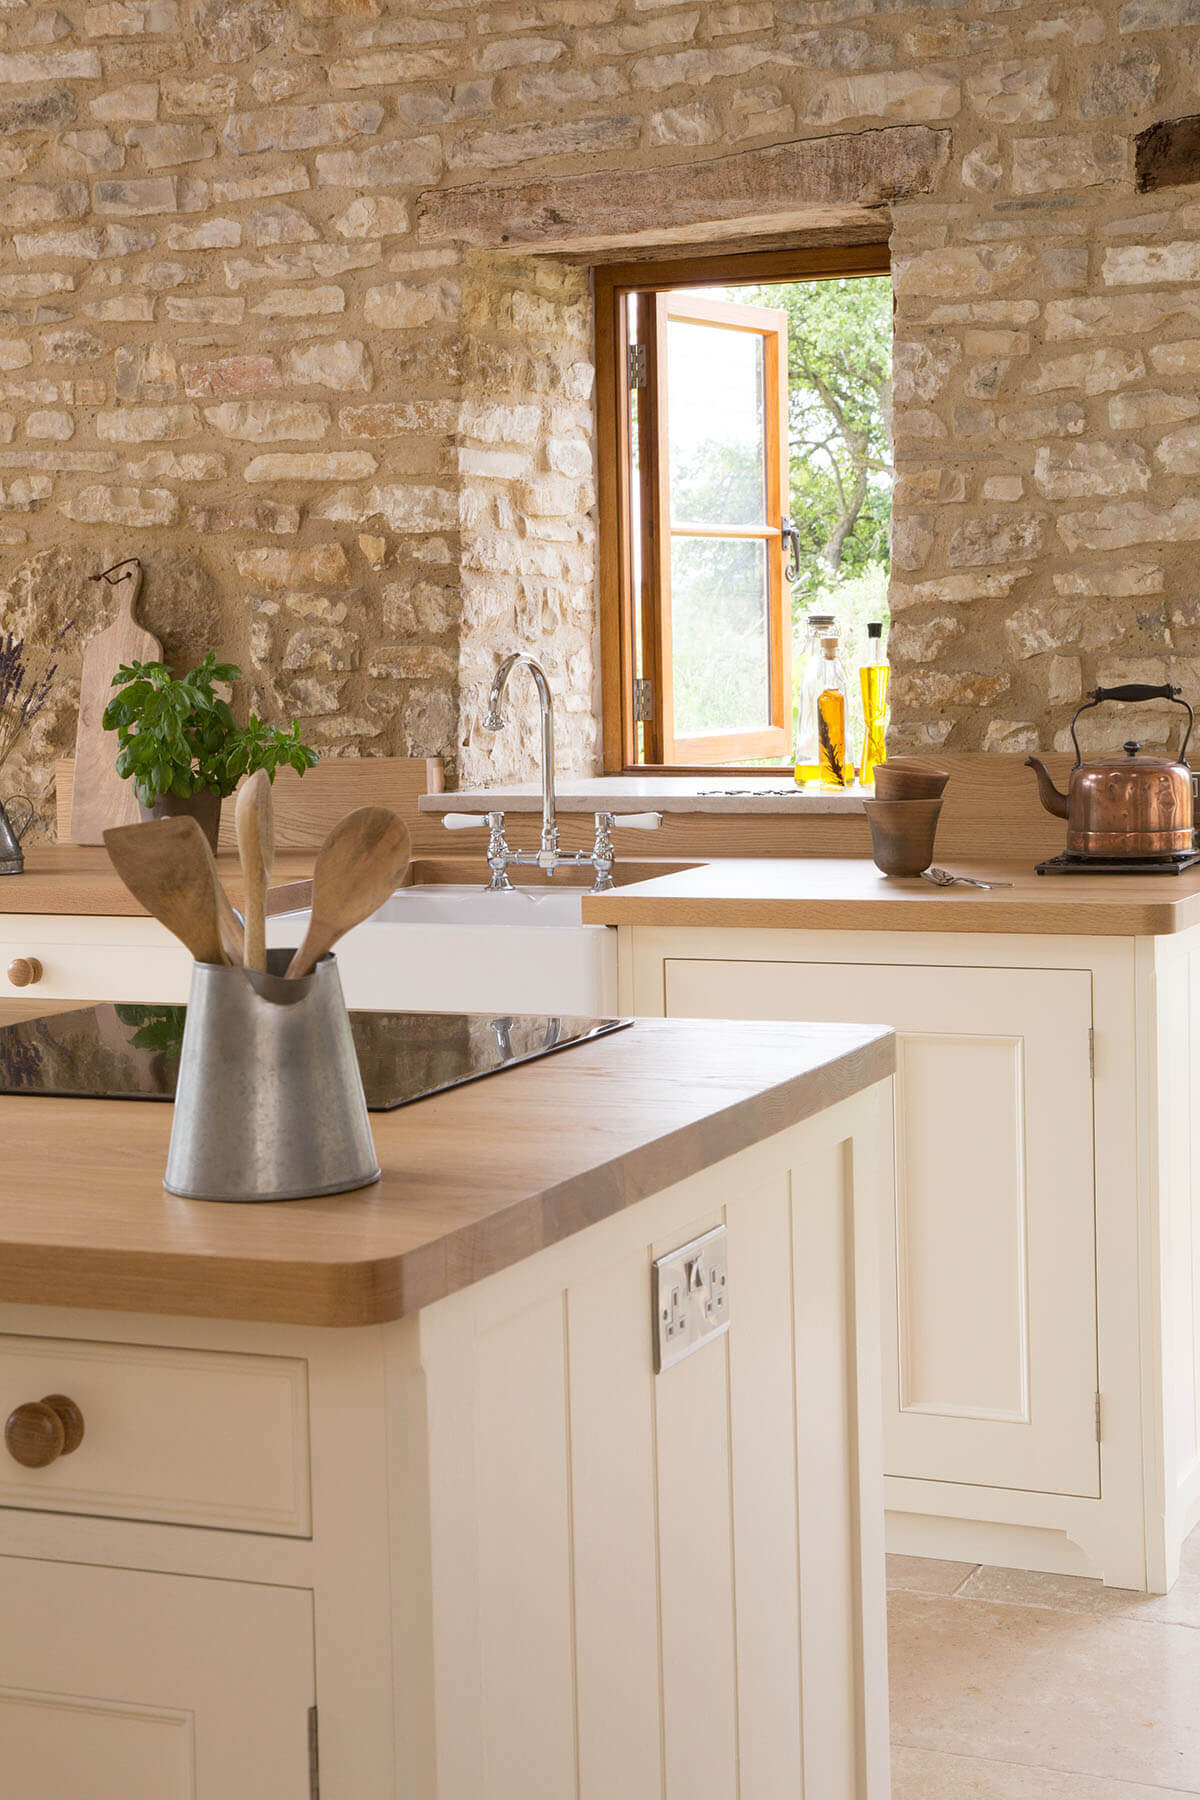 SUSTAINABLE KITCHENS FEATURED ON HOUZZ